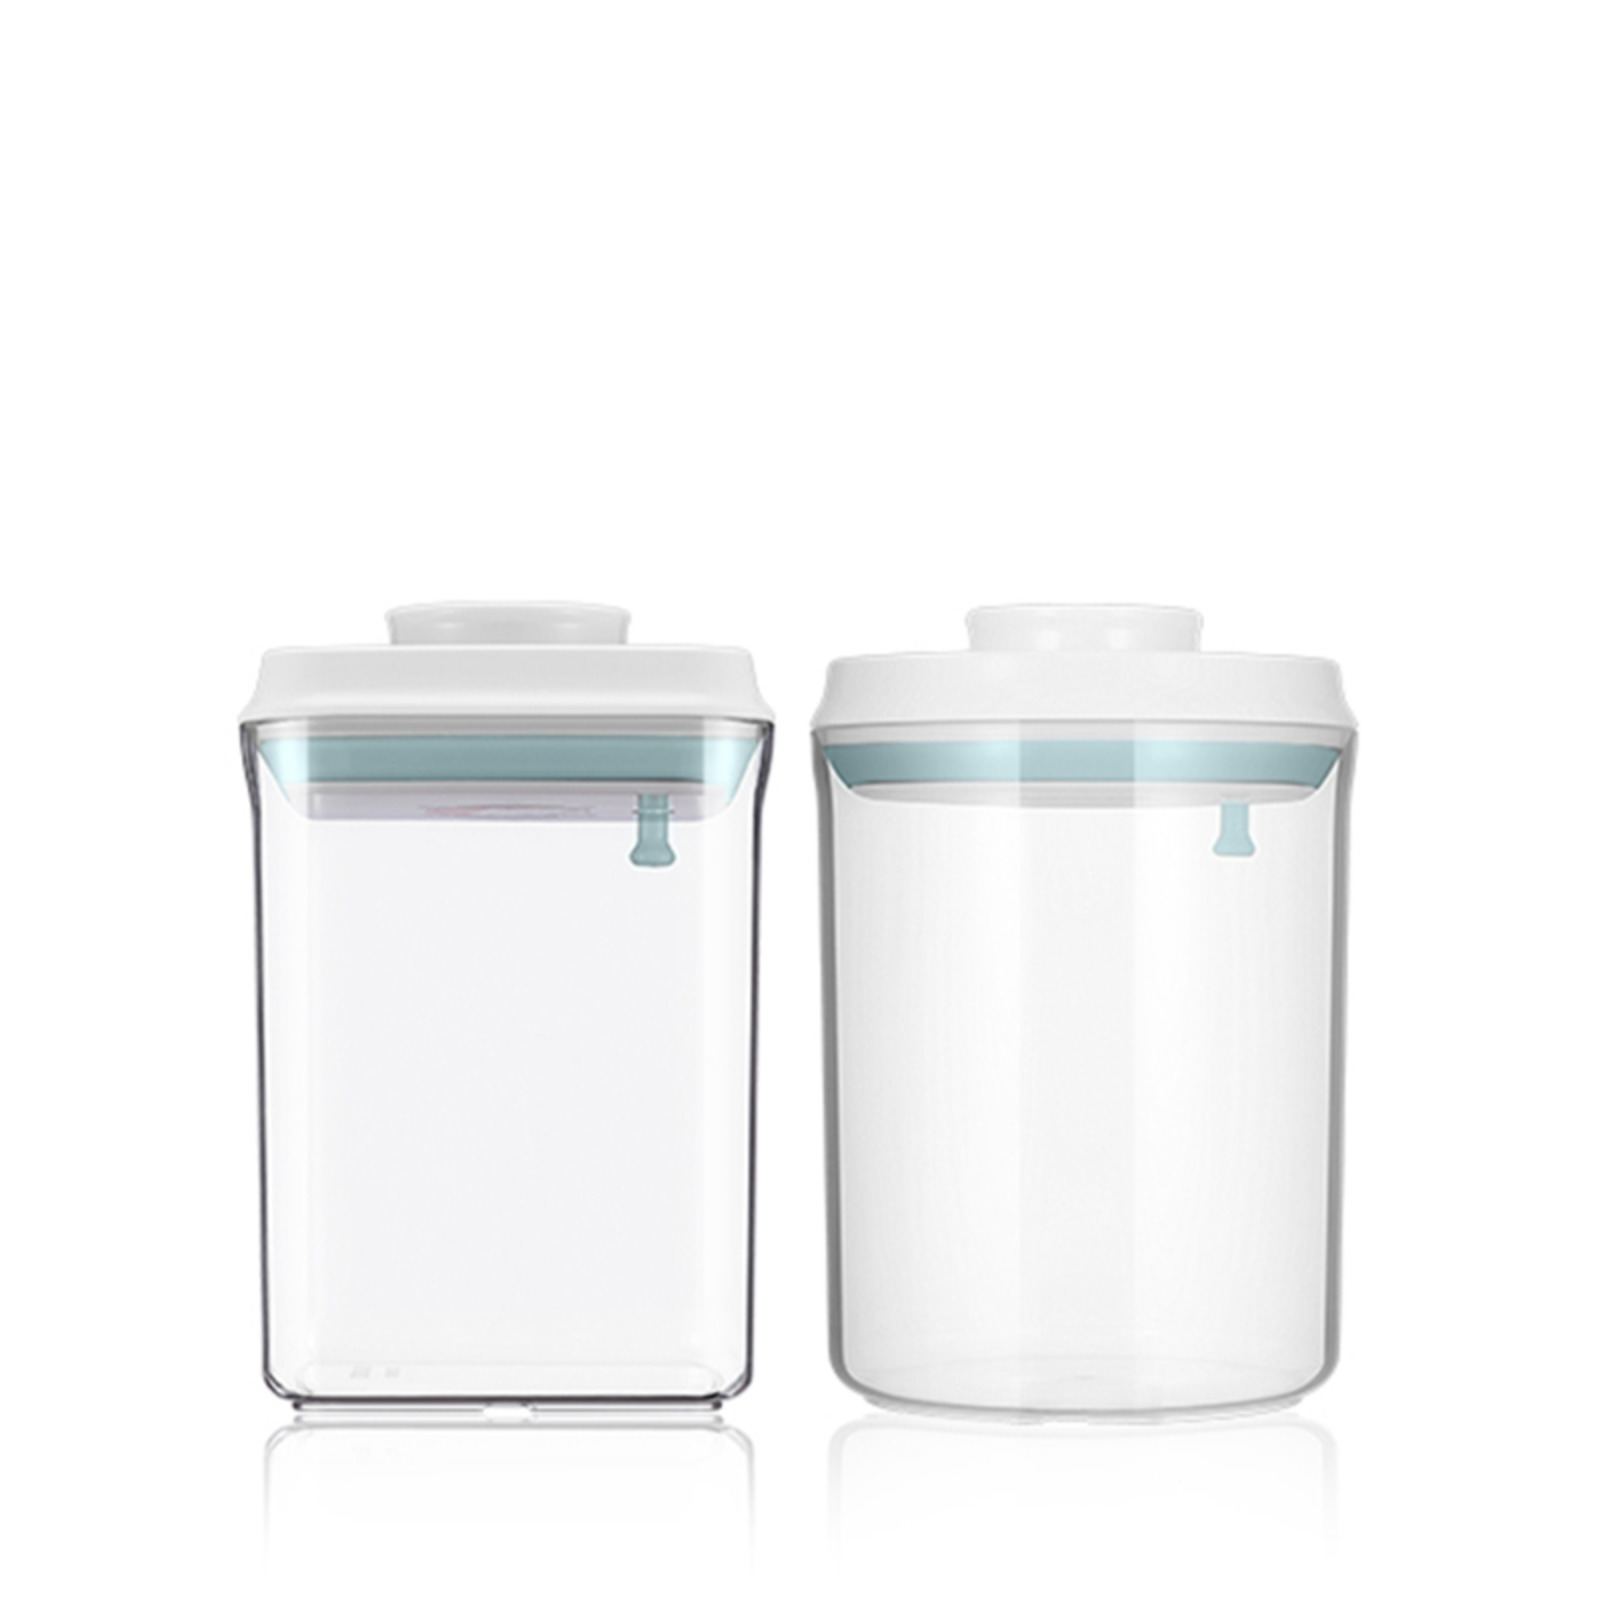 Ankou PLC/PP Round Square Air Tight Container 2pc Set